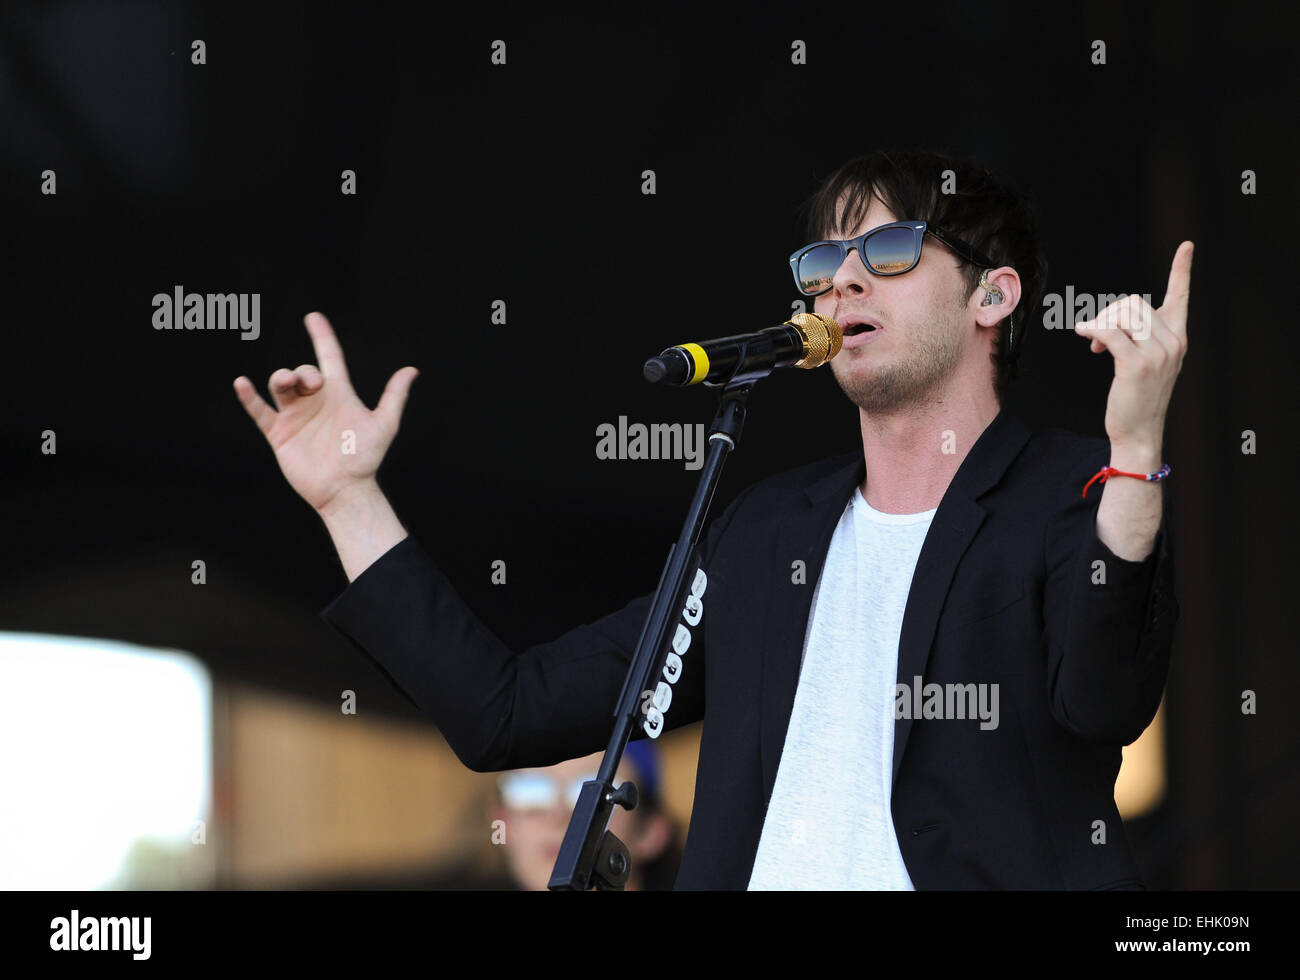 Santiago, Chile. 14th Mar, 2015. A member of the U.S. band 'Foster The People', performs during the Lollapalooza - Stock Image